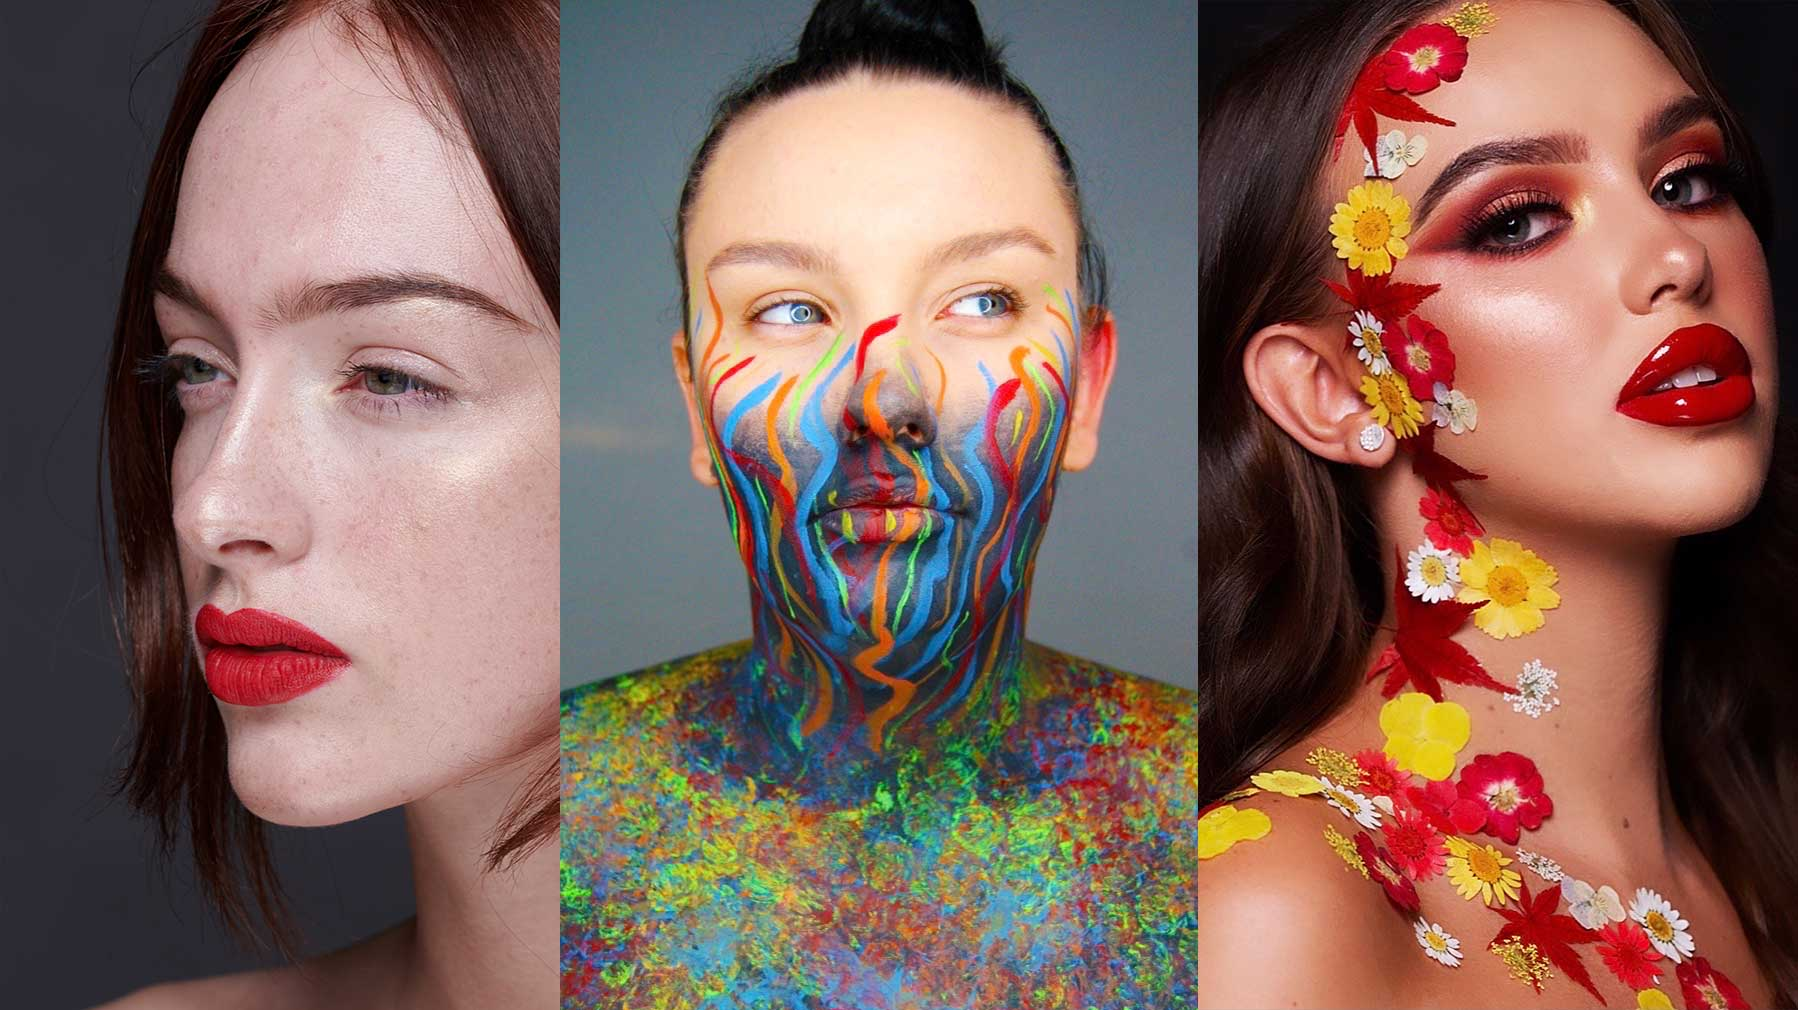 Creative Make Up Design And Practice